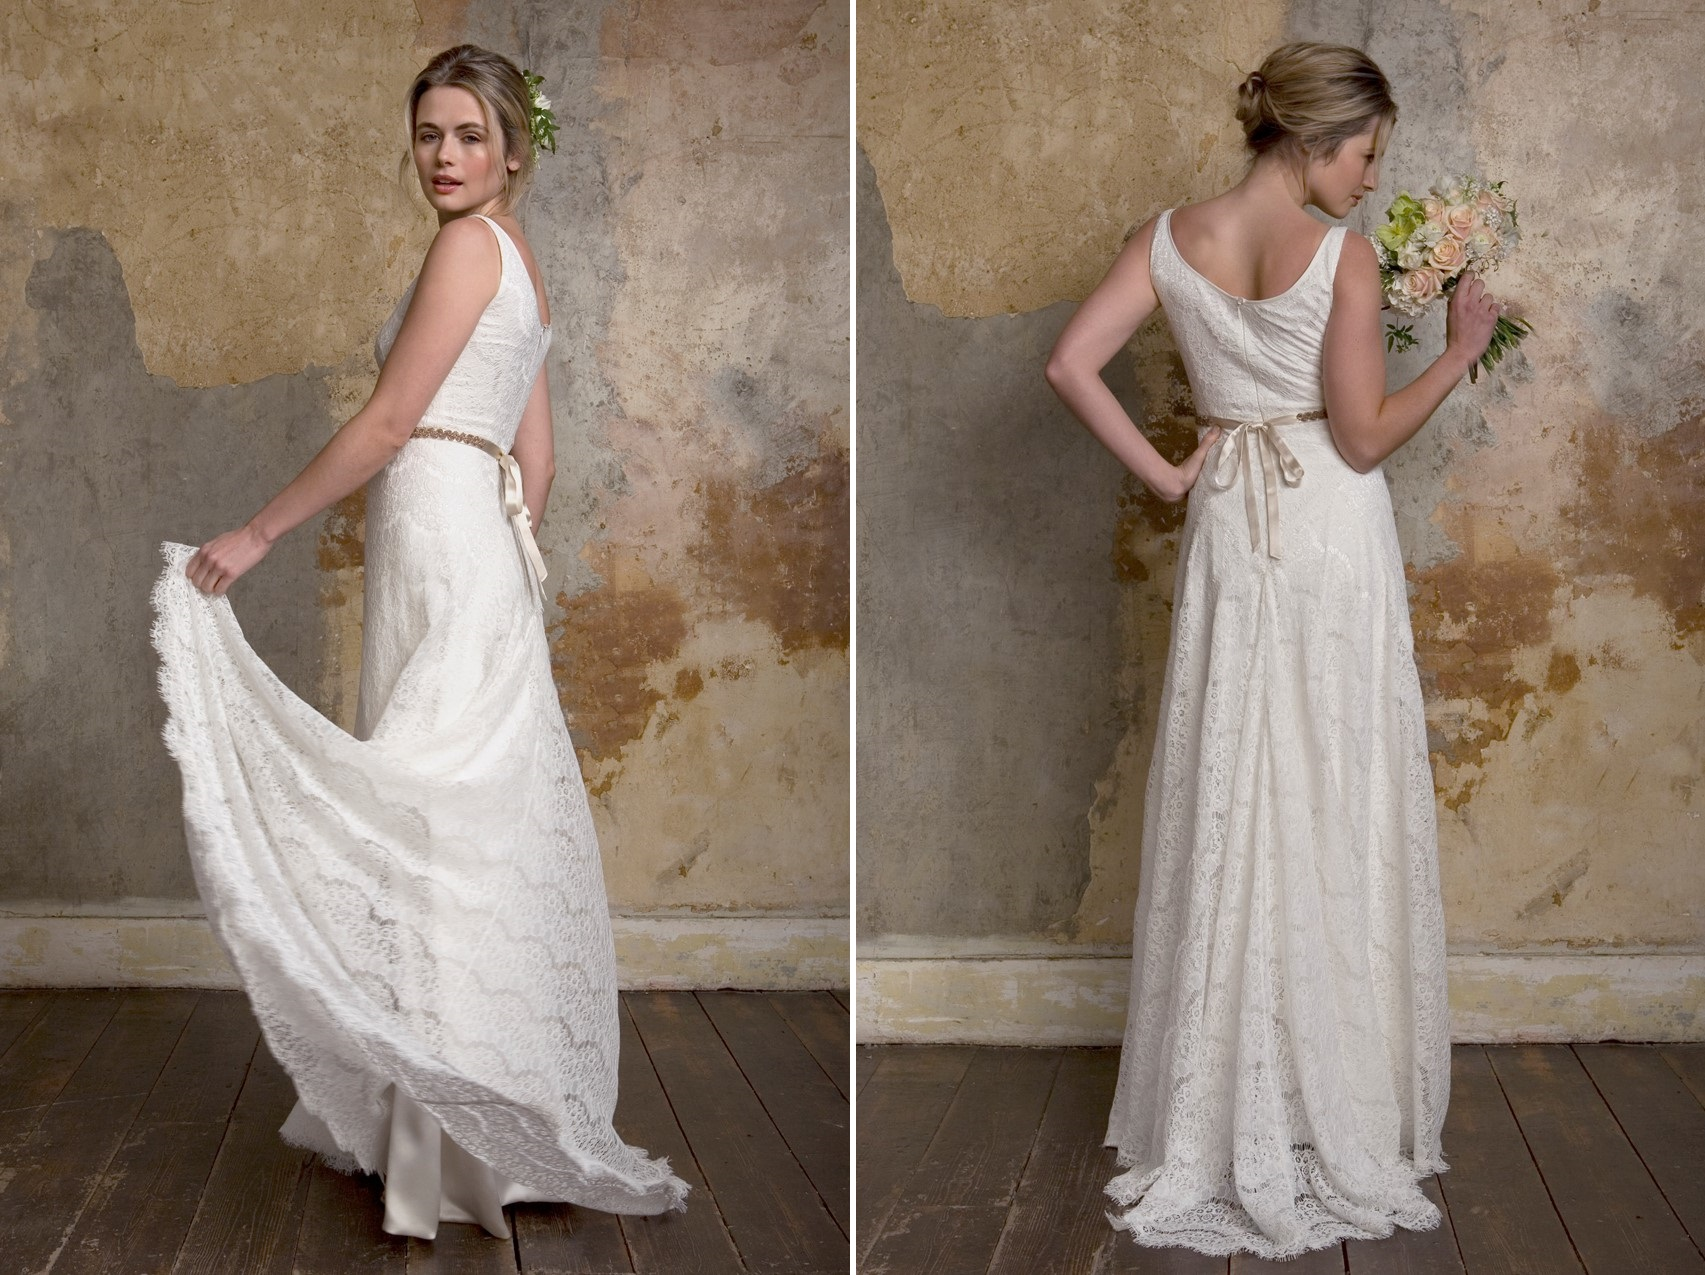 Sally Lacock Camille - a classic wedding dress